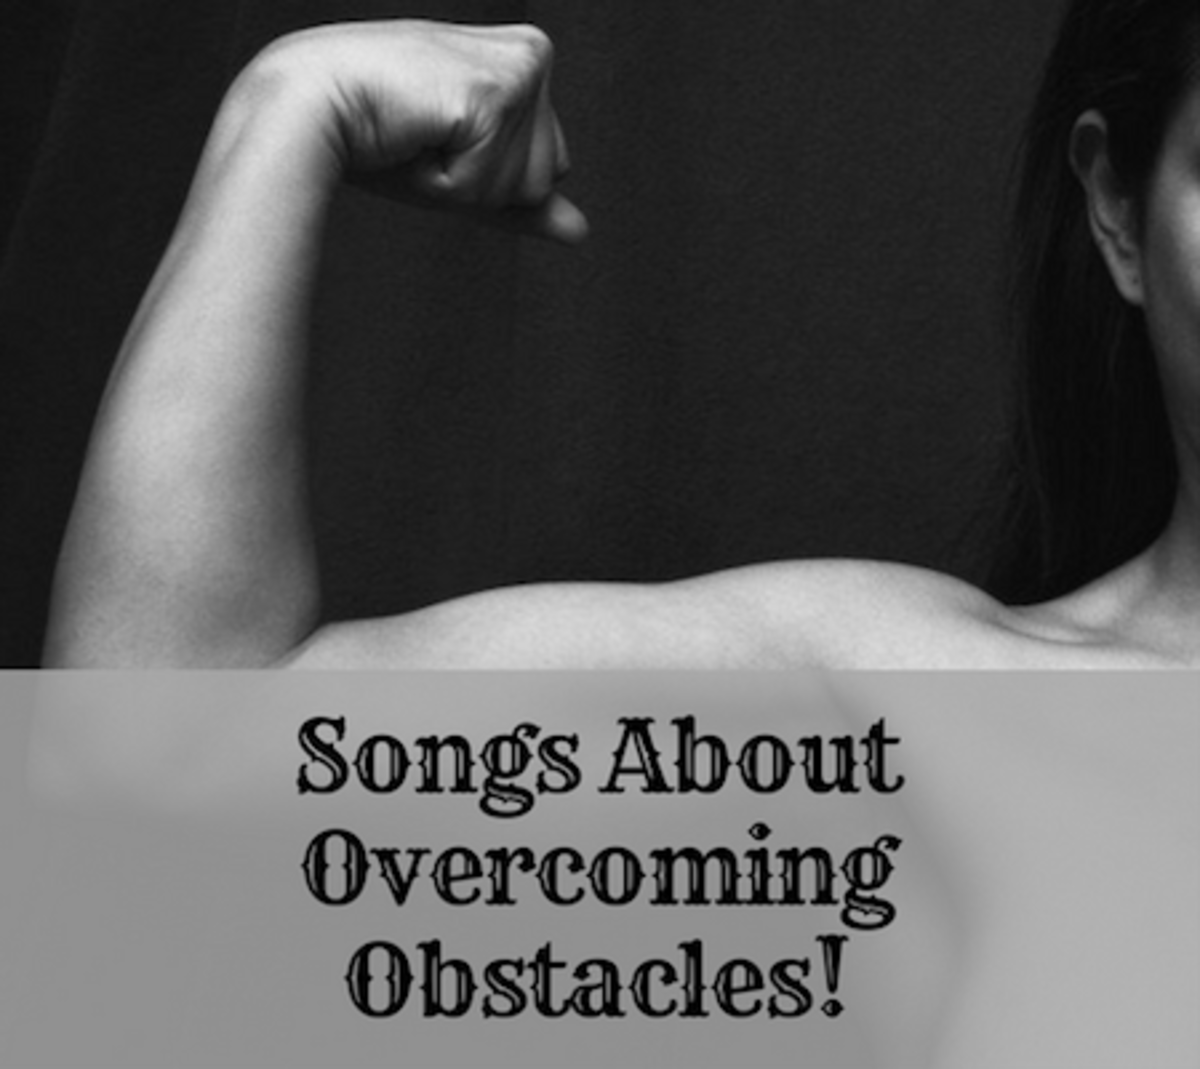 51 Songs About Overcoming Obstacles, Adversity, Hard Times